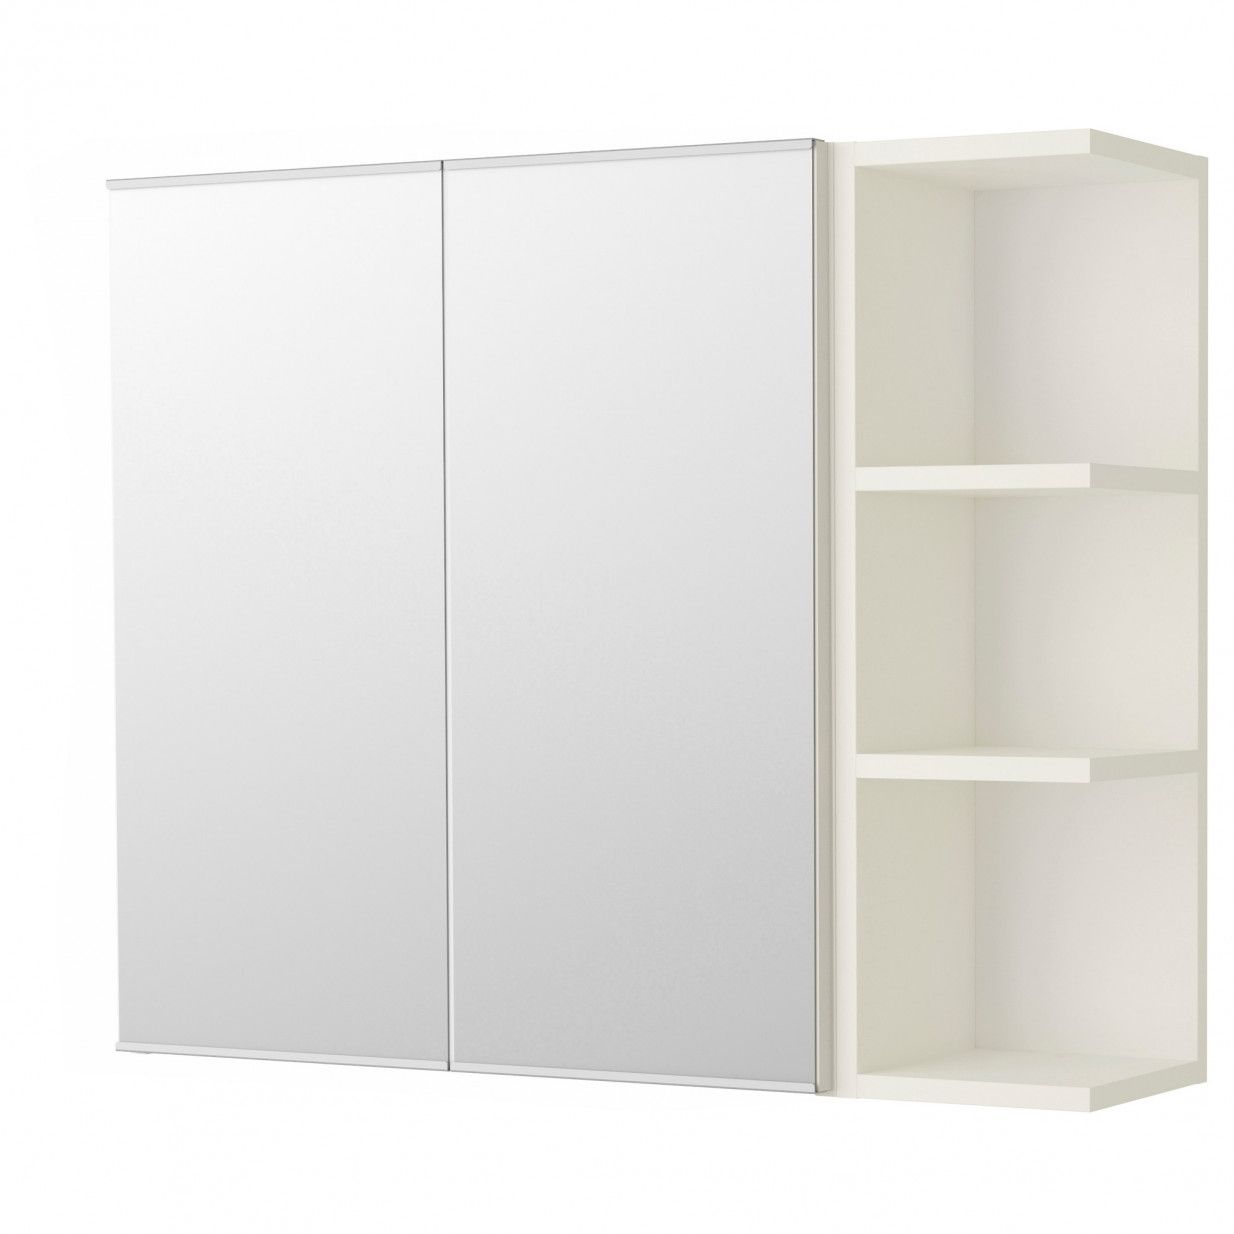 50 ikea bathroom medicine cabinets interior paint color ideas check more at http